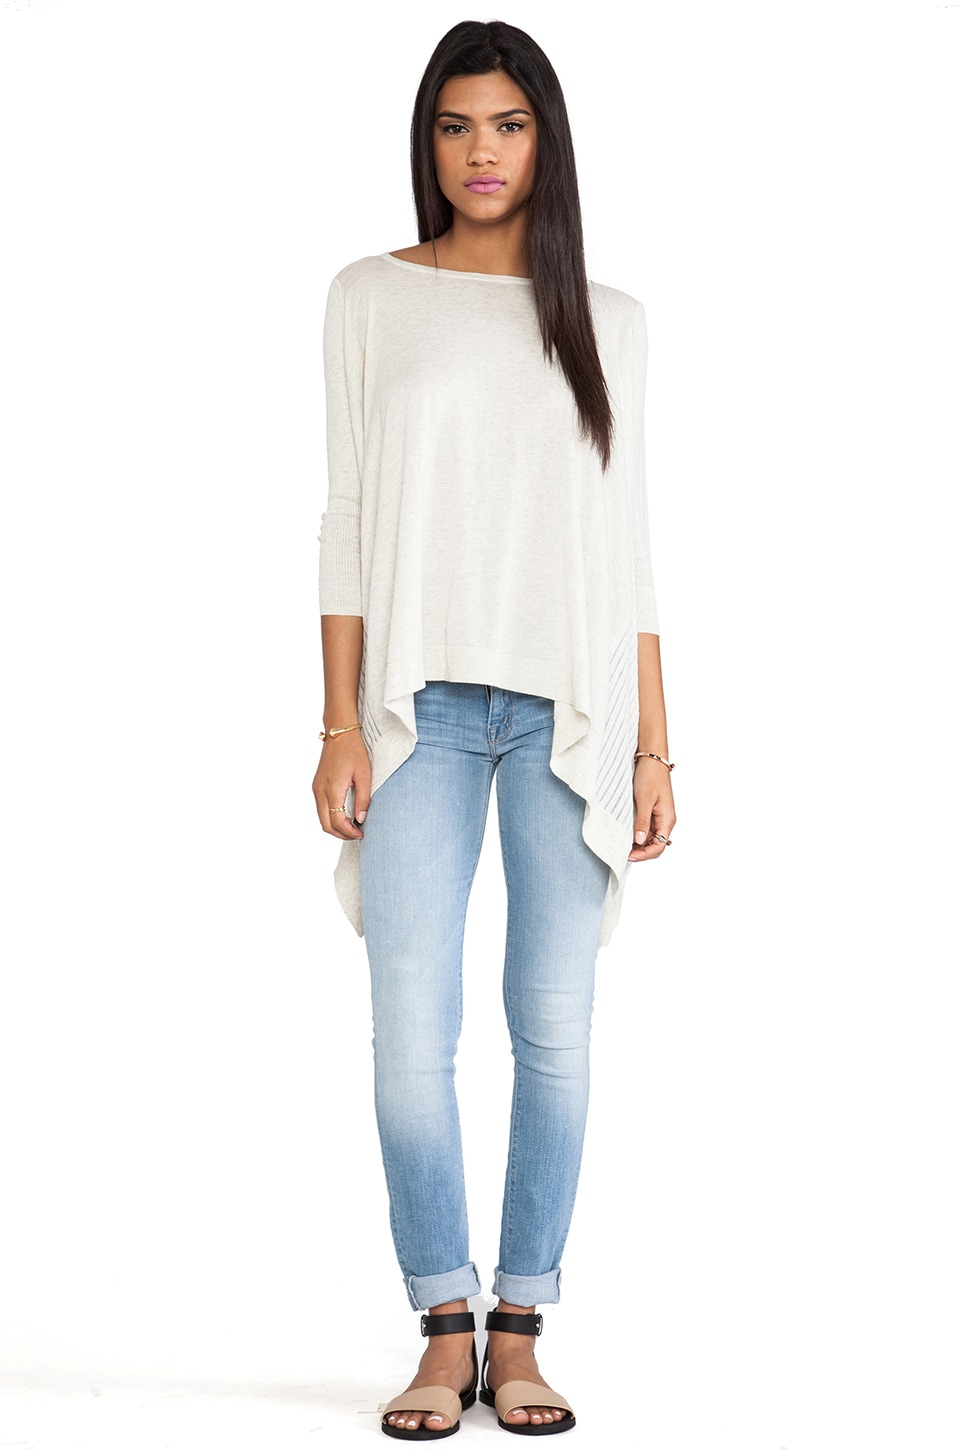 Autumn Cashmere Hi Low Sweater in Hemp